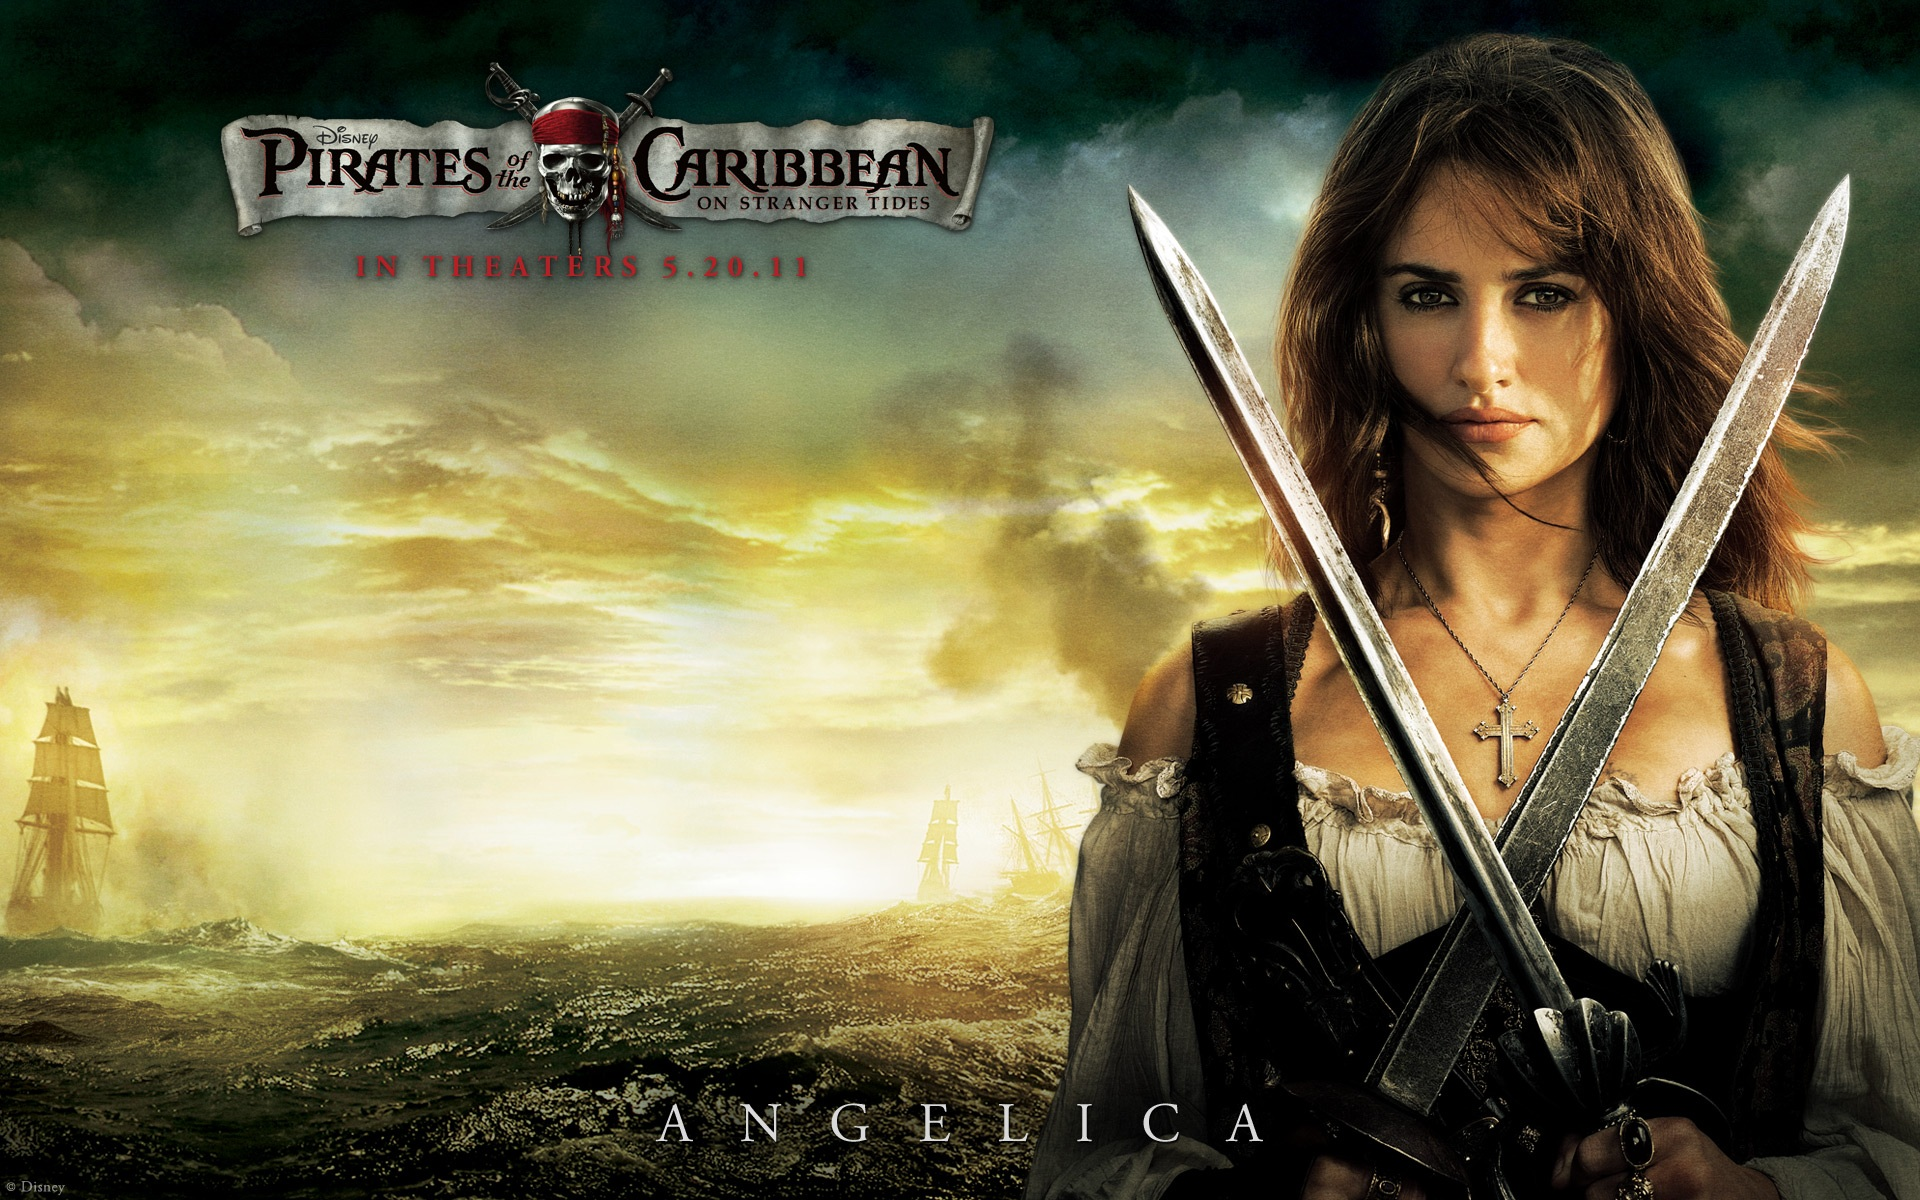 Wallpaper Pirates Of The Caribbean 4 Angelica 1920x1200 Hd Picture